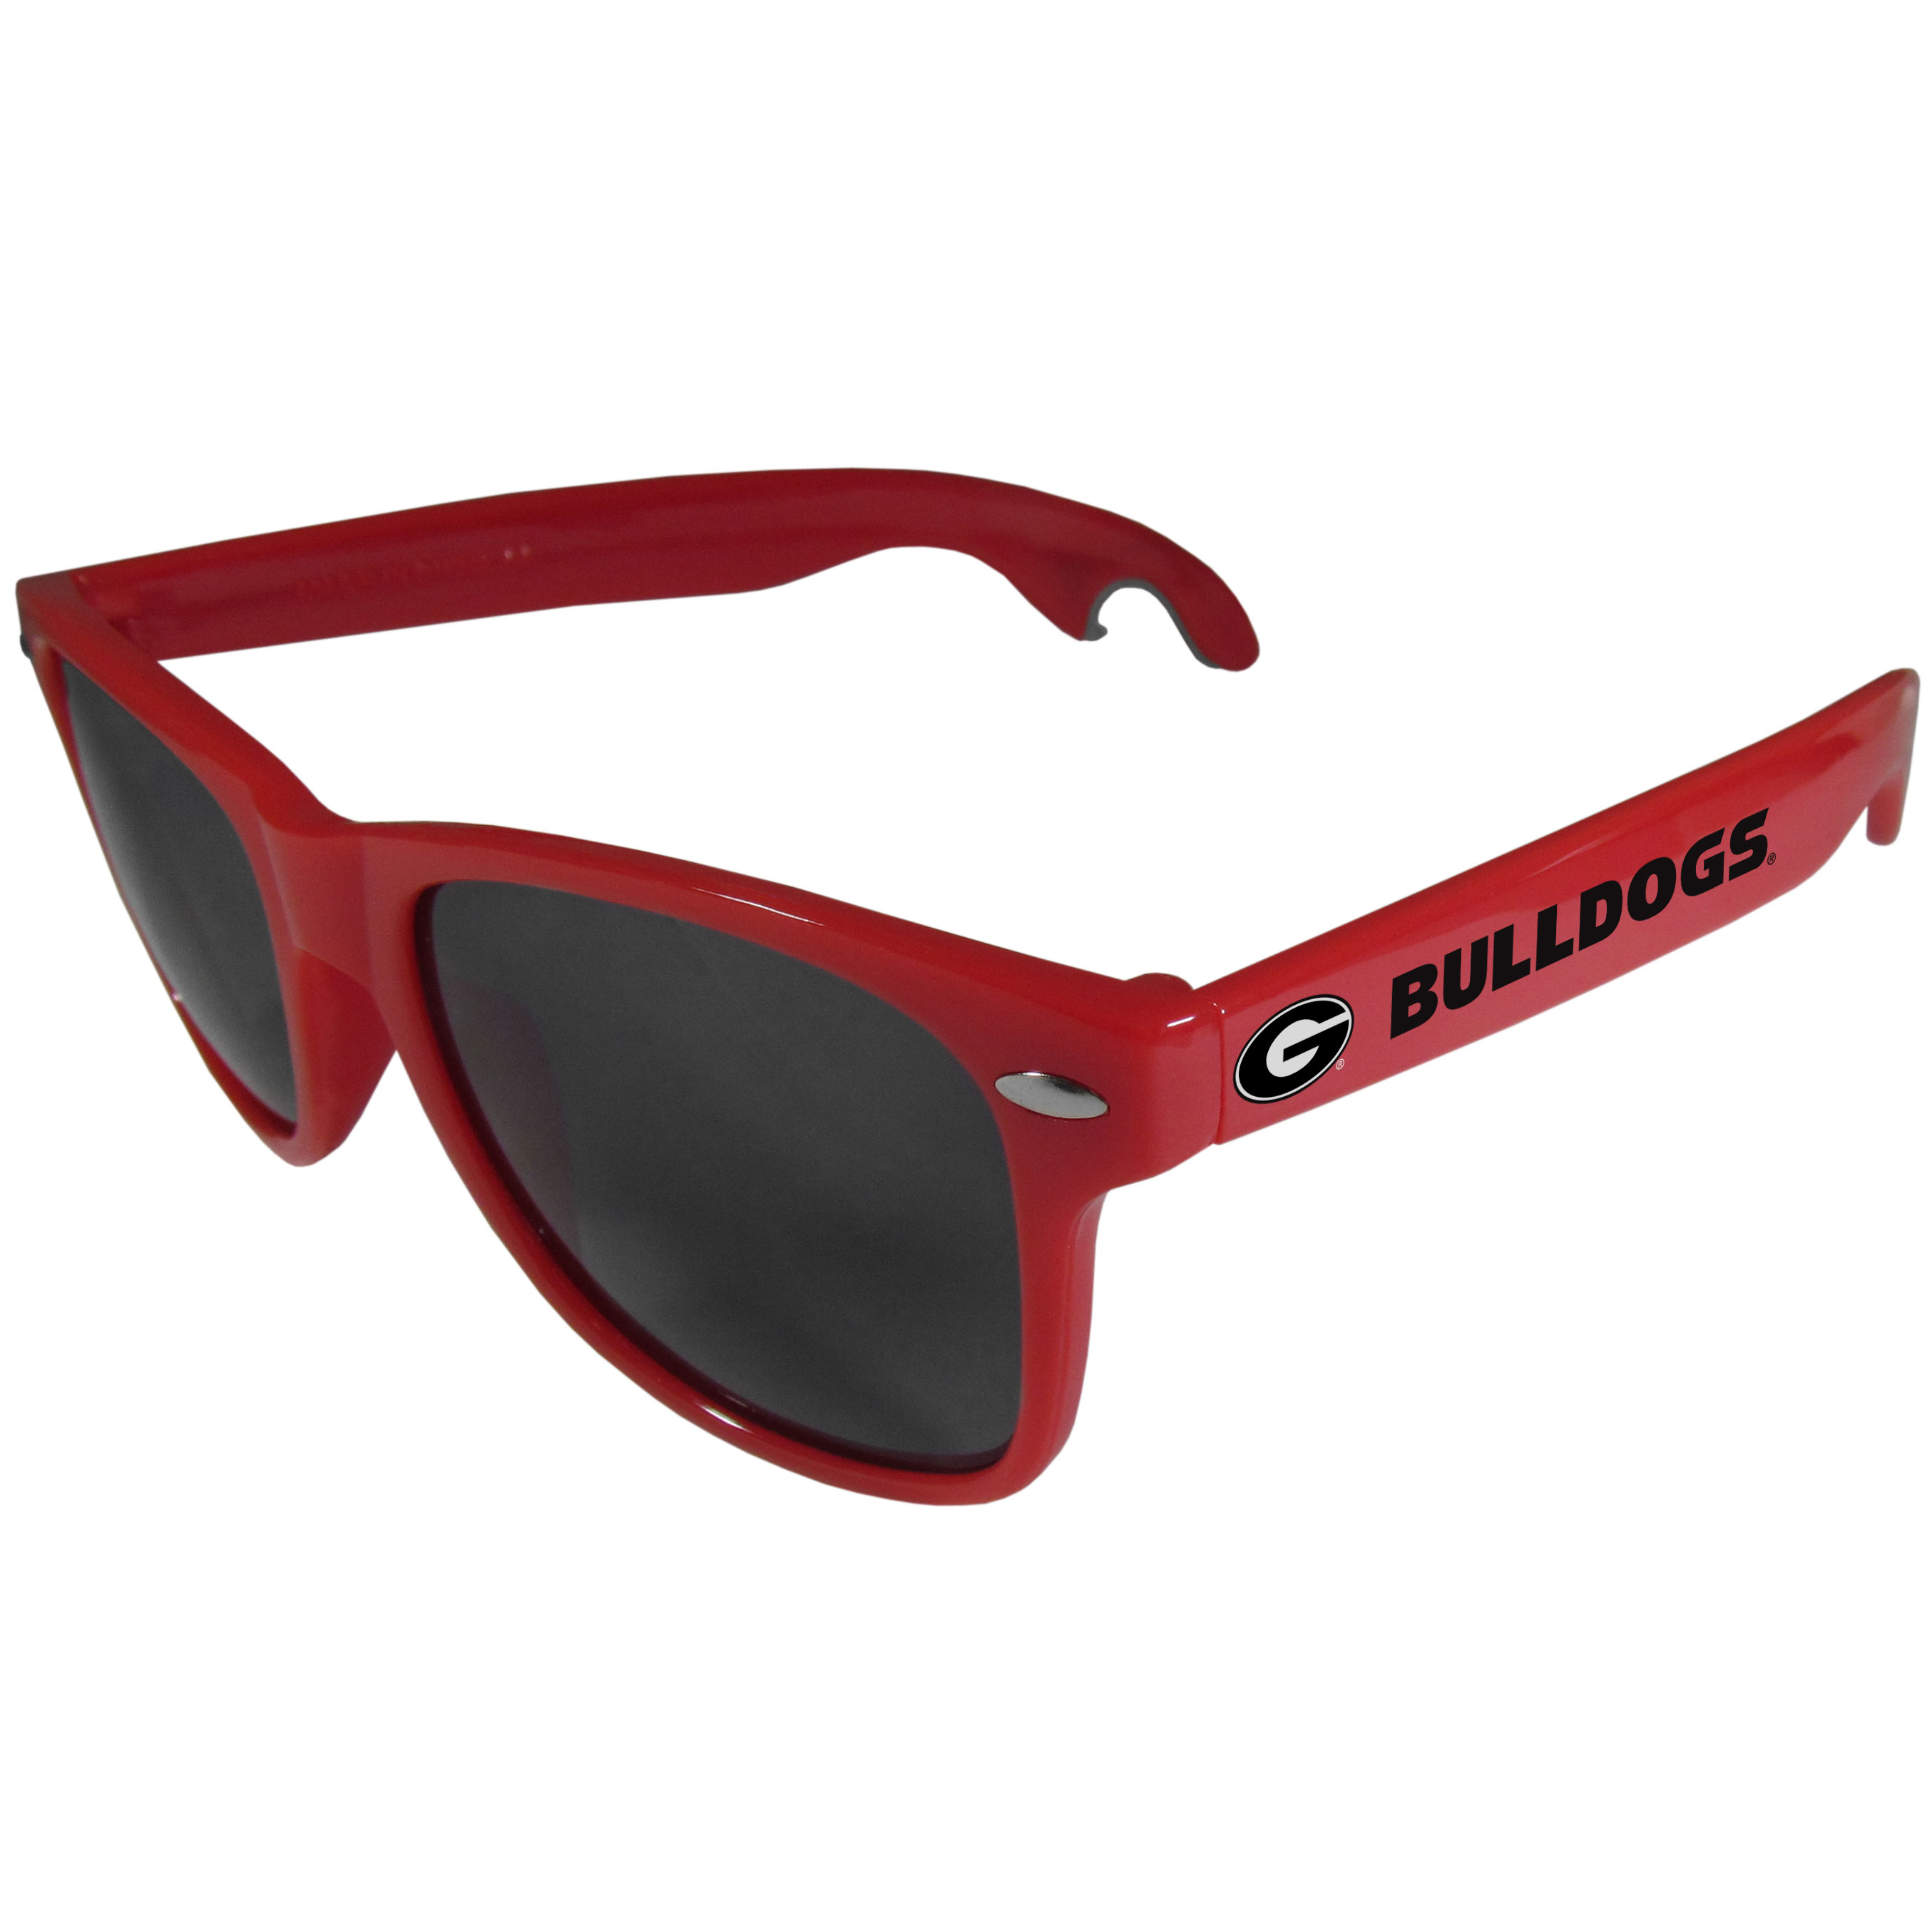 Georgia Bulldogs Beachfarer Bottle Opener Sunglasses, Red - Seriously, these sunglasses open bottles! Keep the party going with these amazing Georgia Bulldogs bottle opener sunglasses. The stylish retro frames feature team designs on the arms and functional bottle openers on the end of the arms. Whether you are at the beach or having a backyard BBQ on game day, these shades will keep your eyes protected with 100% UVA/UVB protection and keep you hydrated with the handy bottle opener arms.